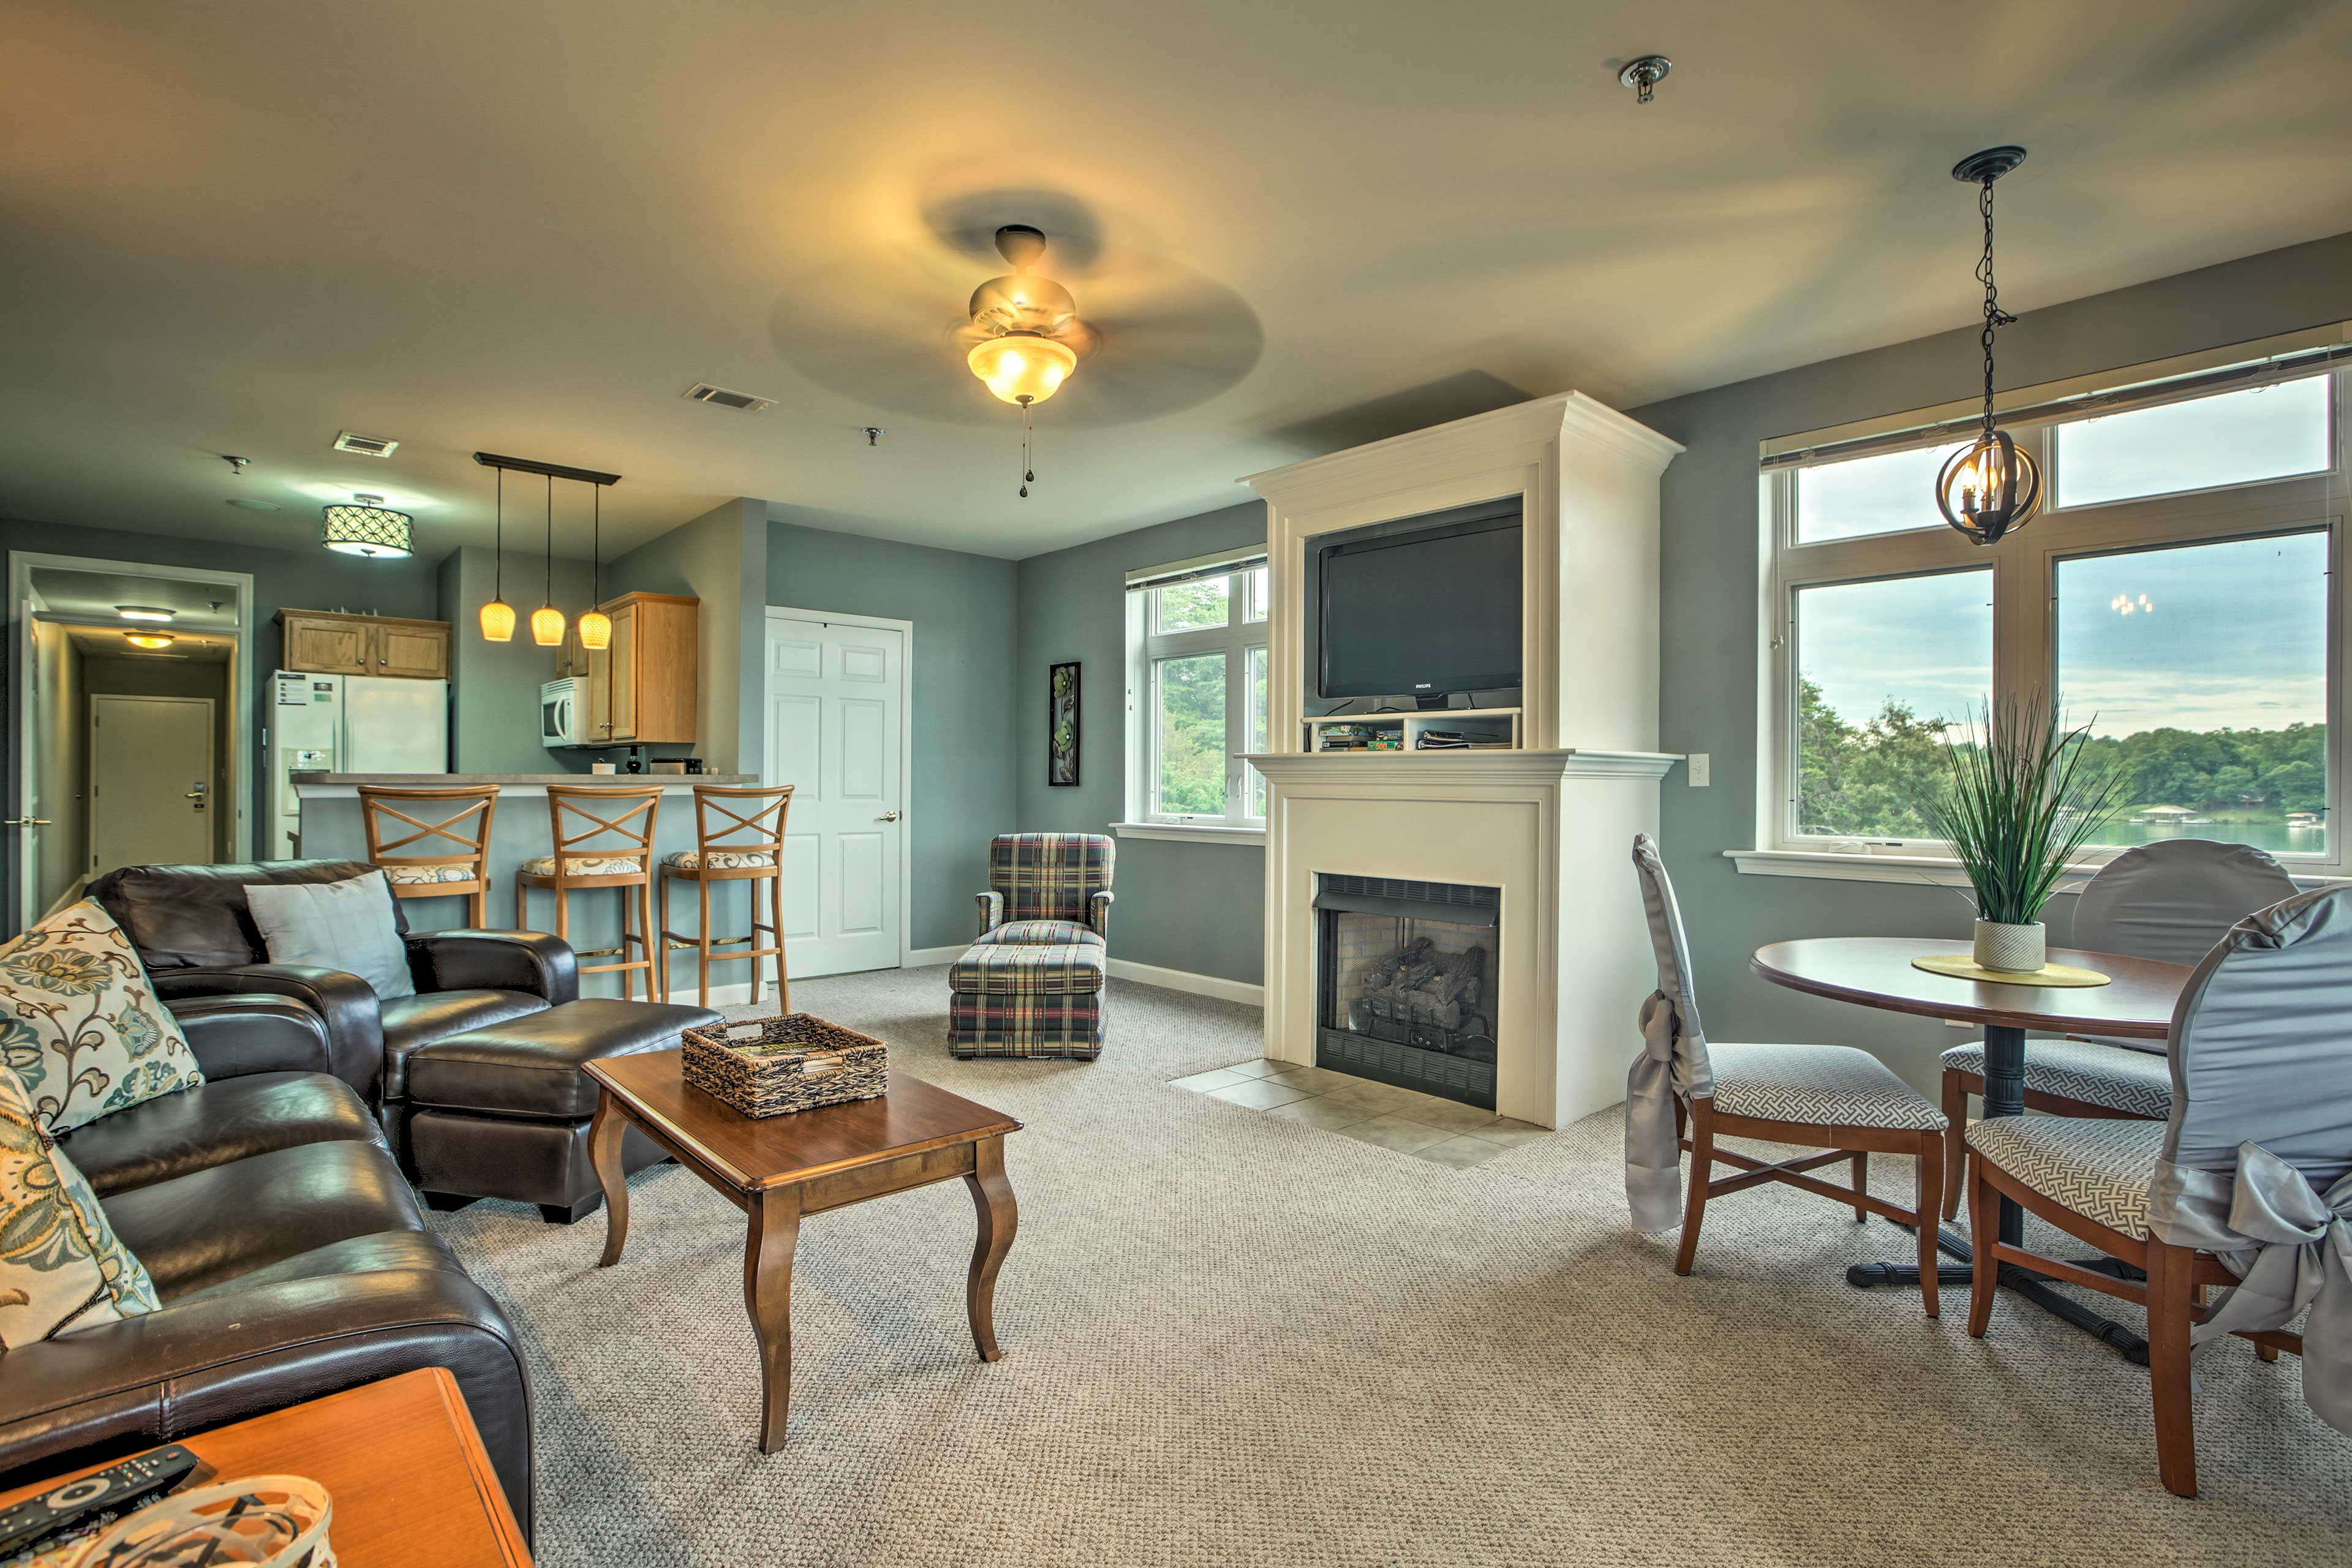 Make yourself at home in the 1,074-square-foot interior.